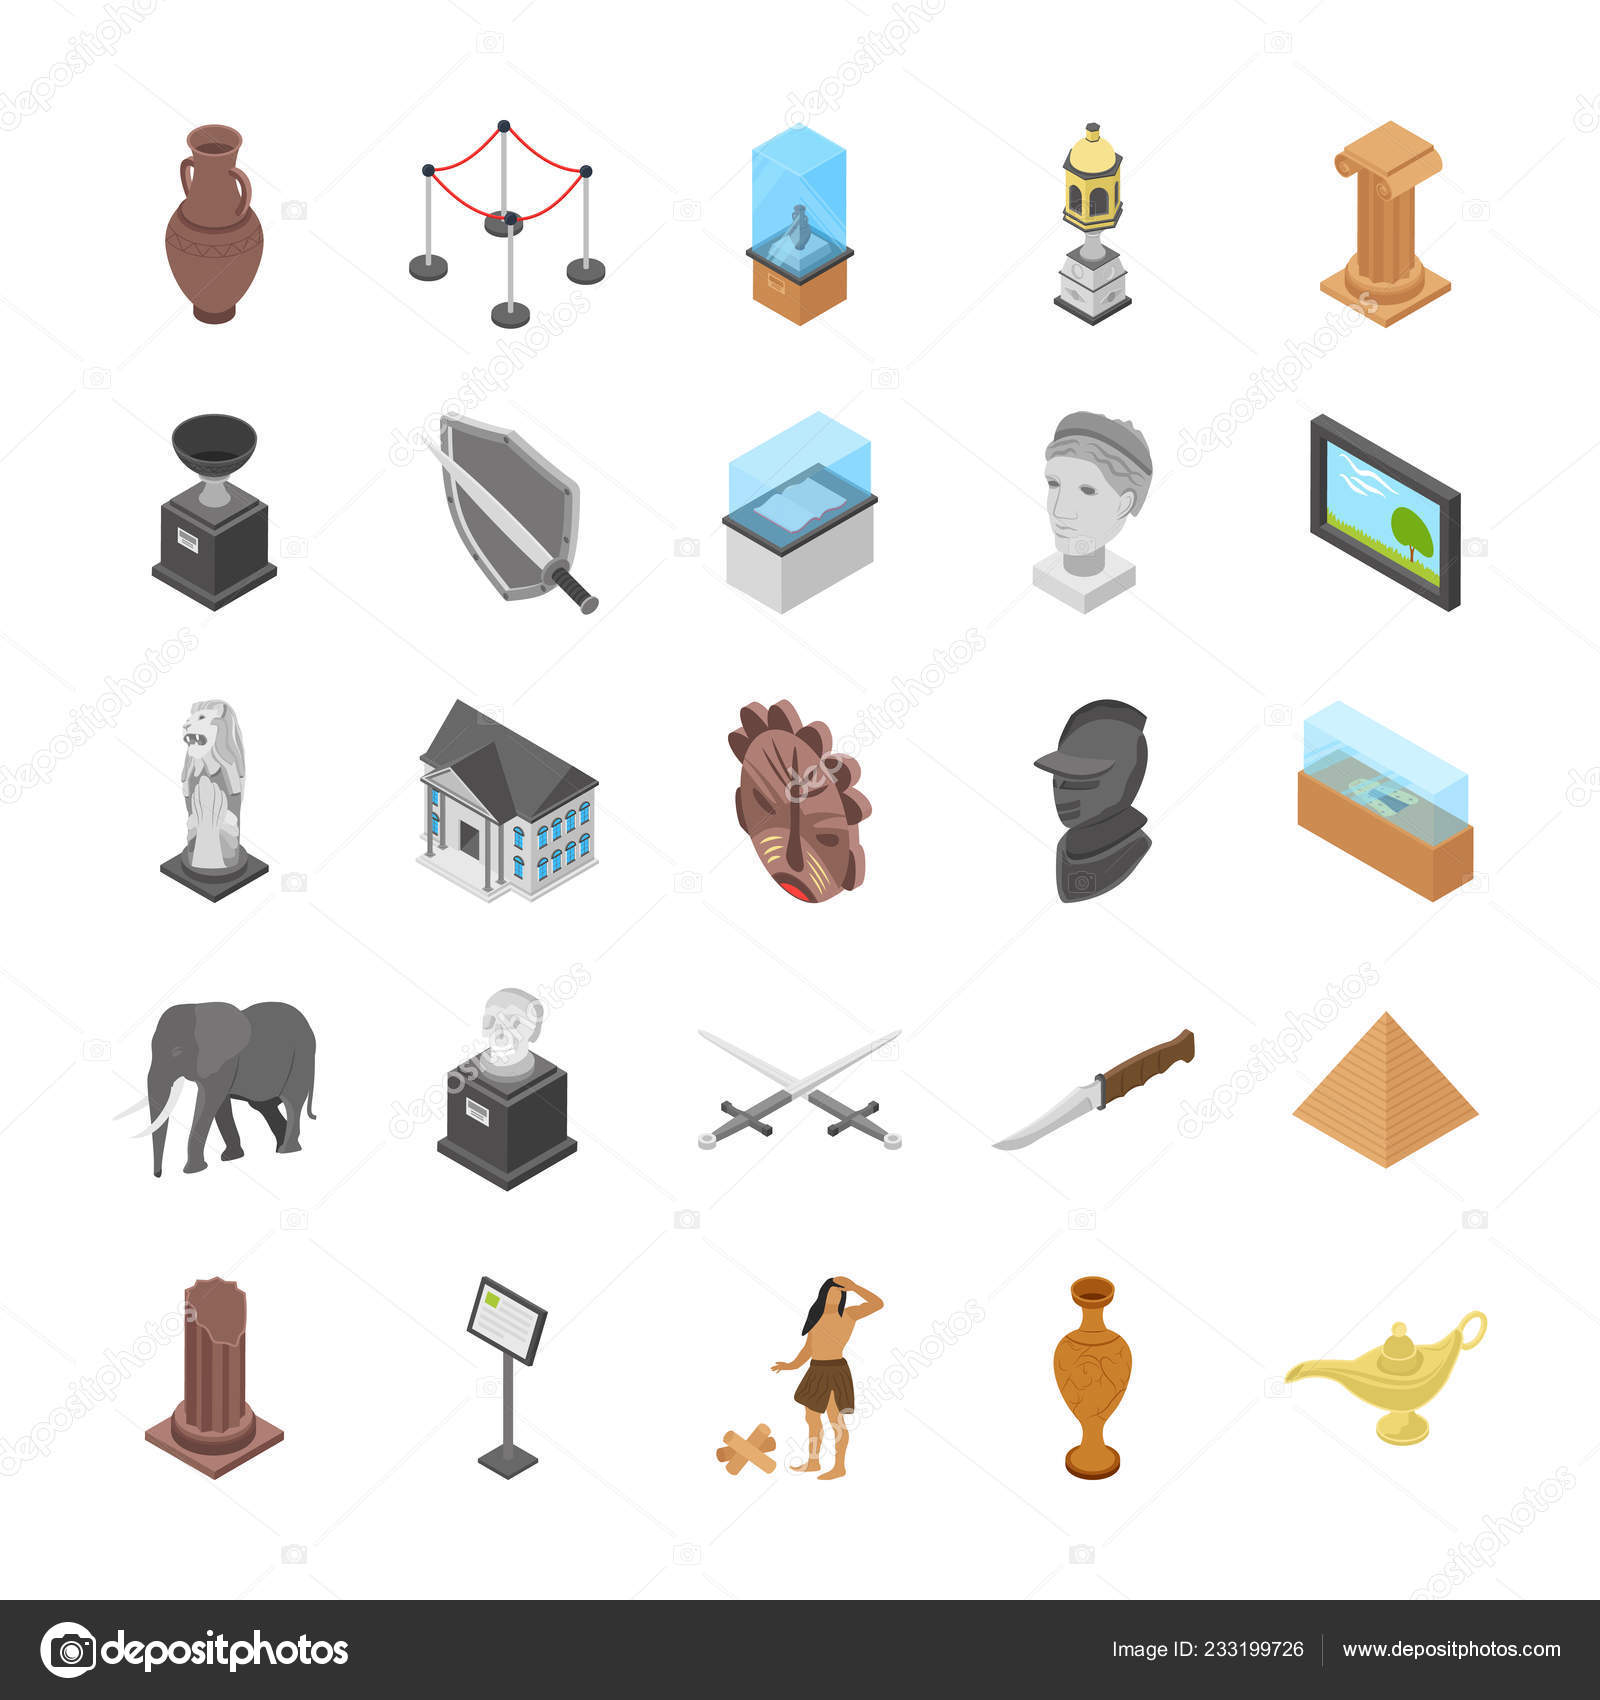 Museum Objects Display Illustrations Pack Portraying Ancient